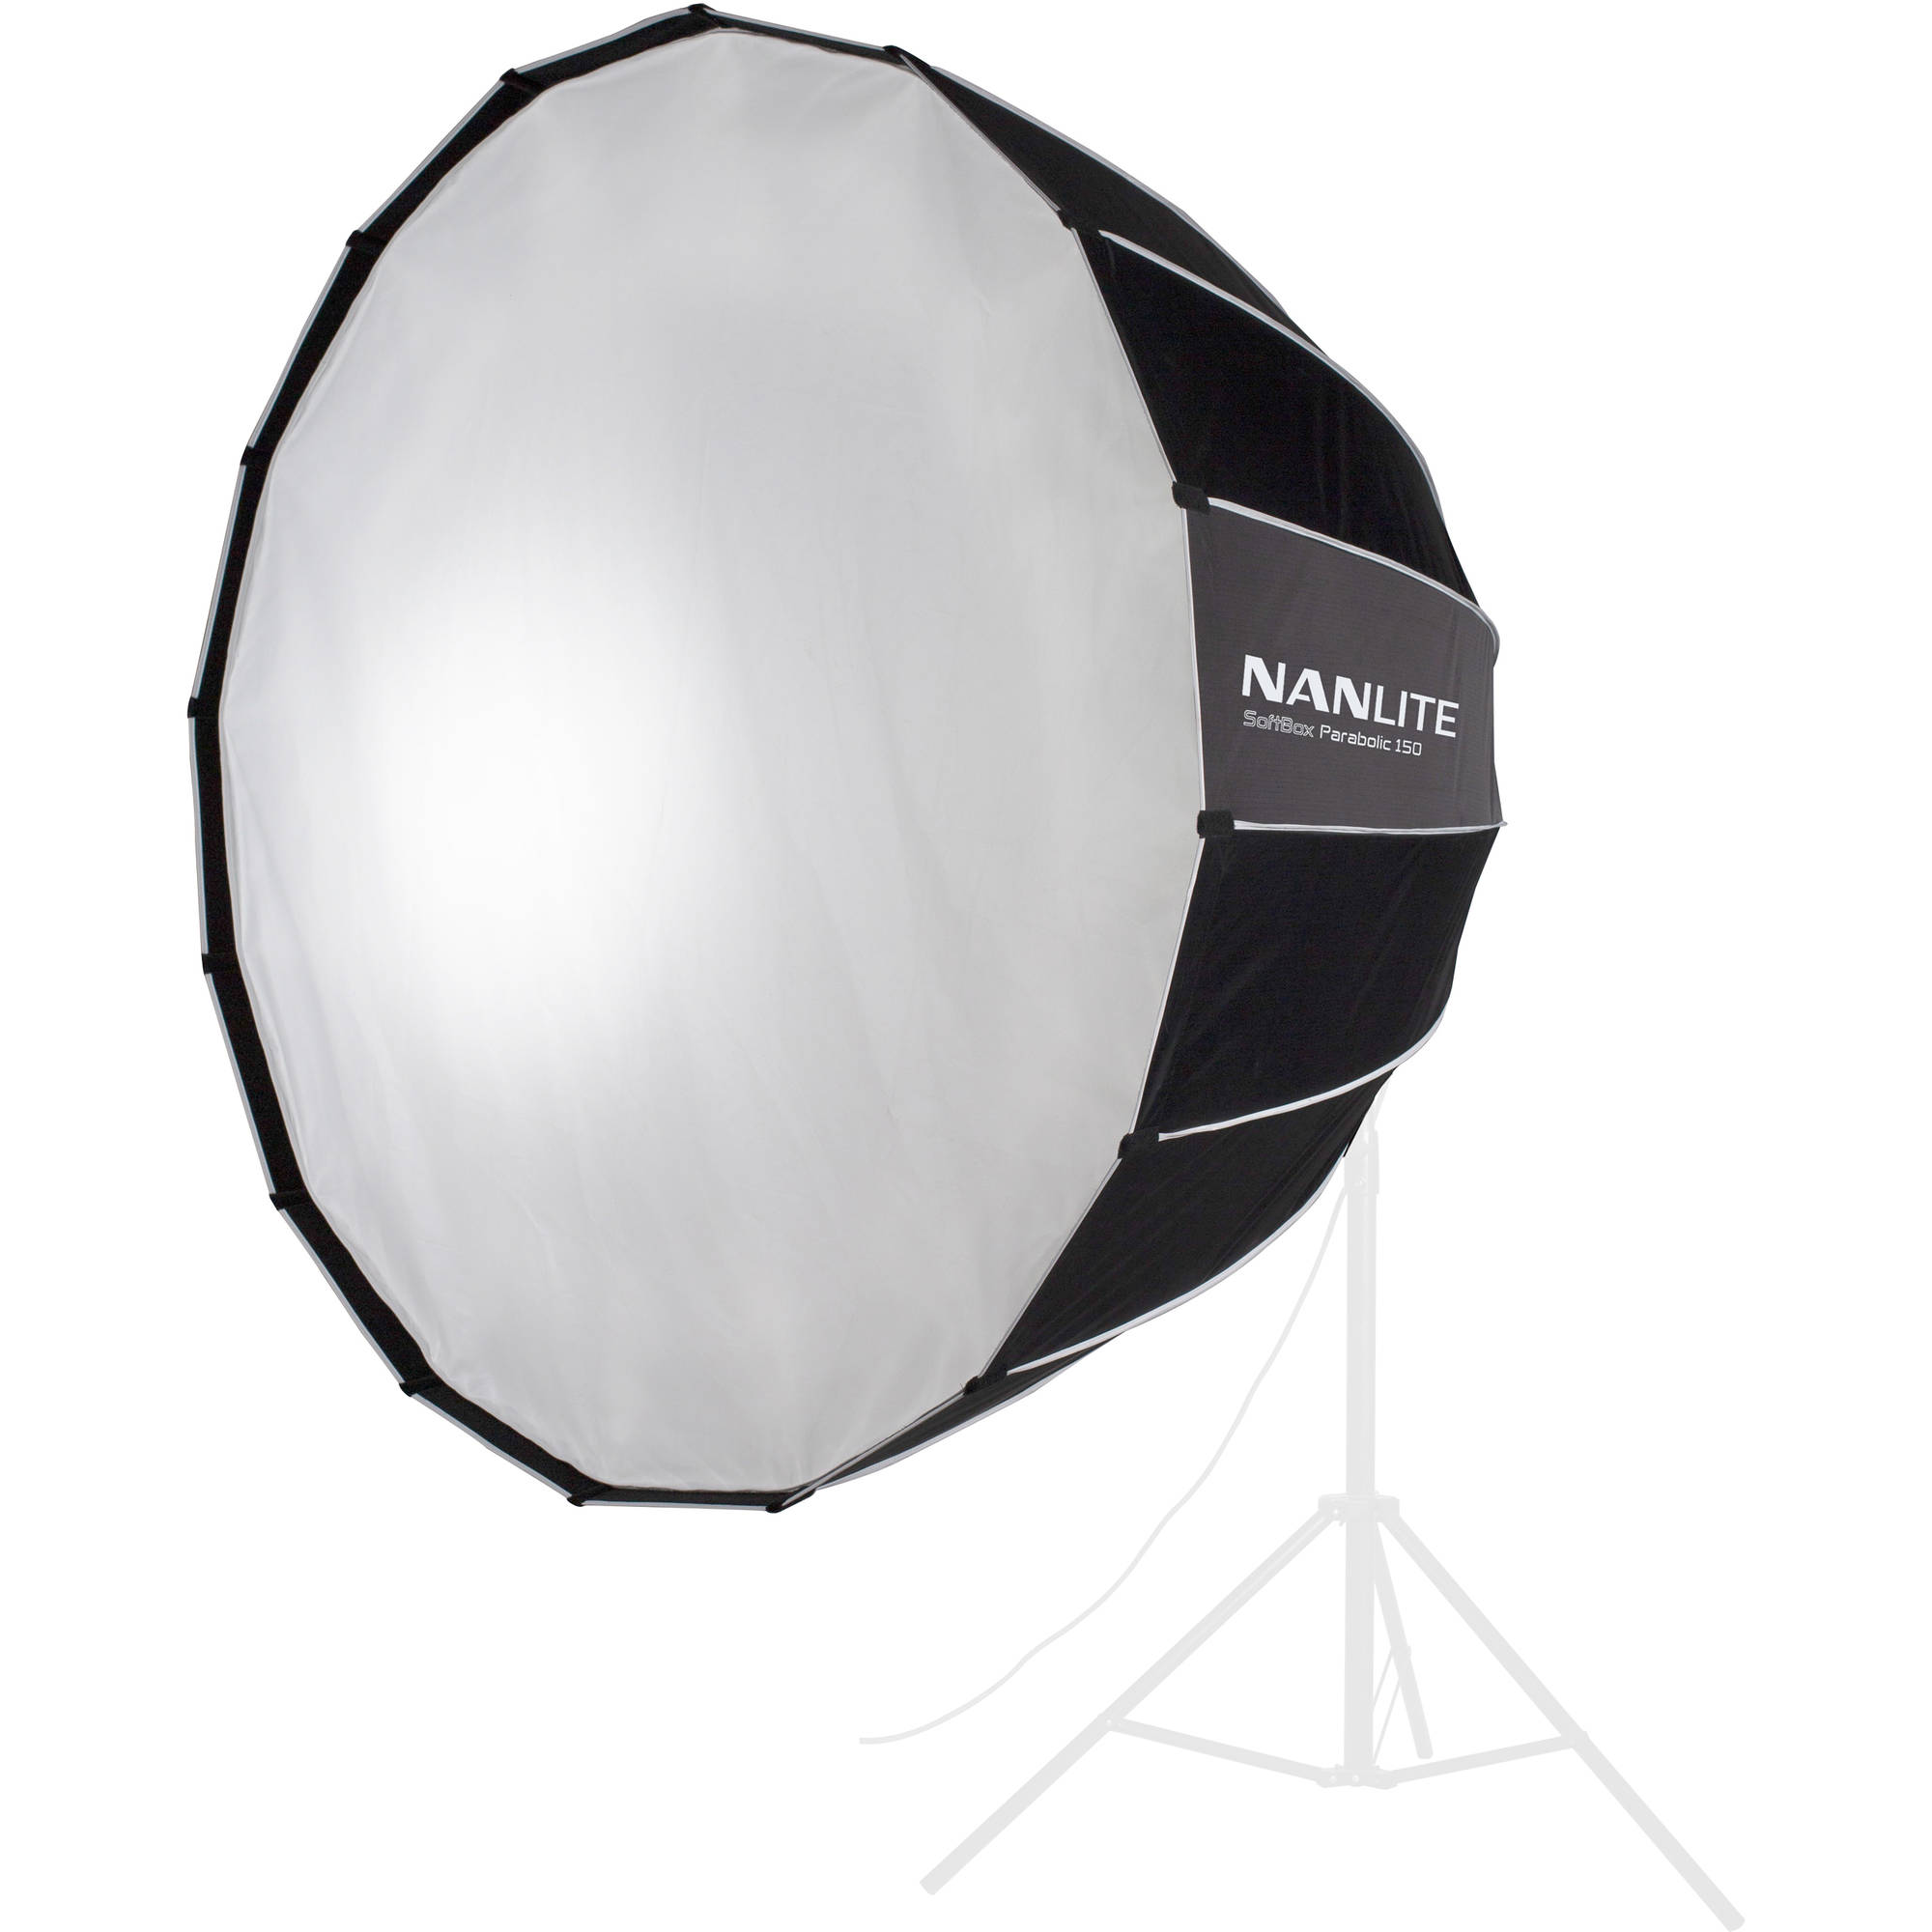 Nanlite SB-PR-150 Hexa Parabolic Light Dome Softbox Bowens Mount